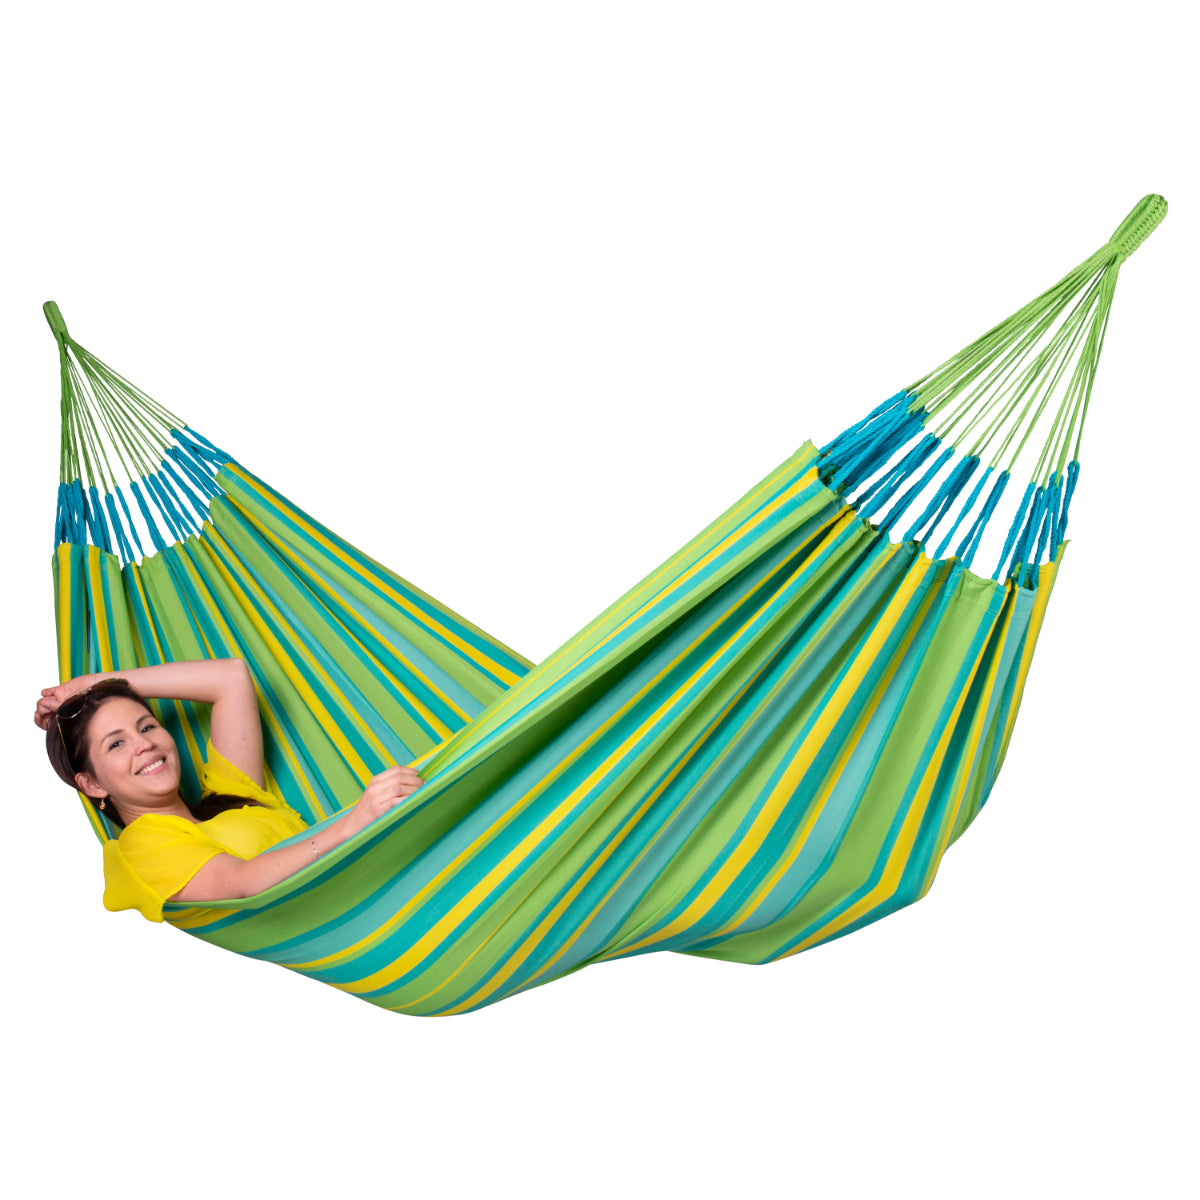 Family Size Hammock in Lime Green Colours